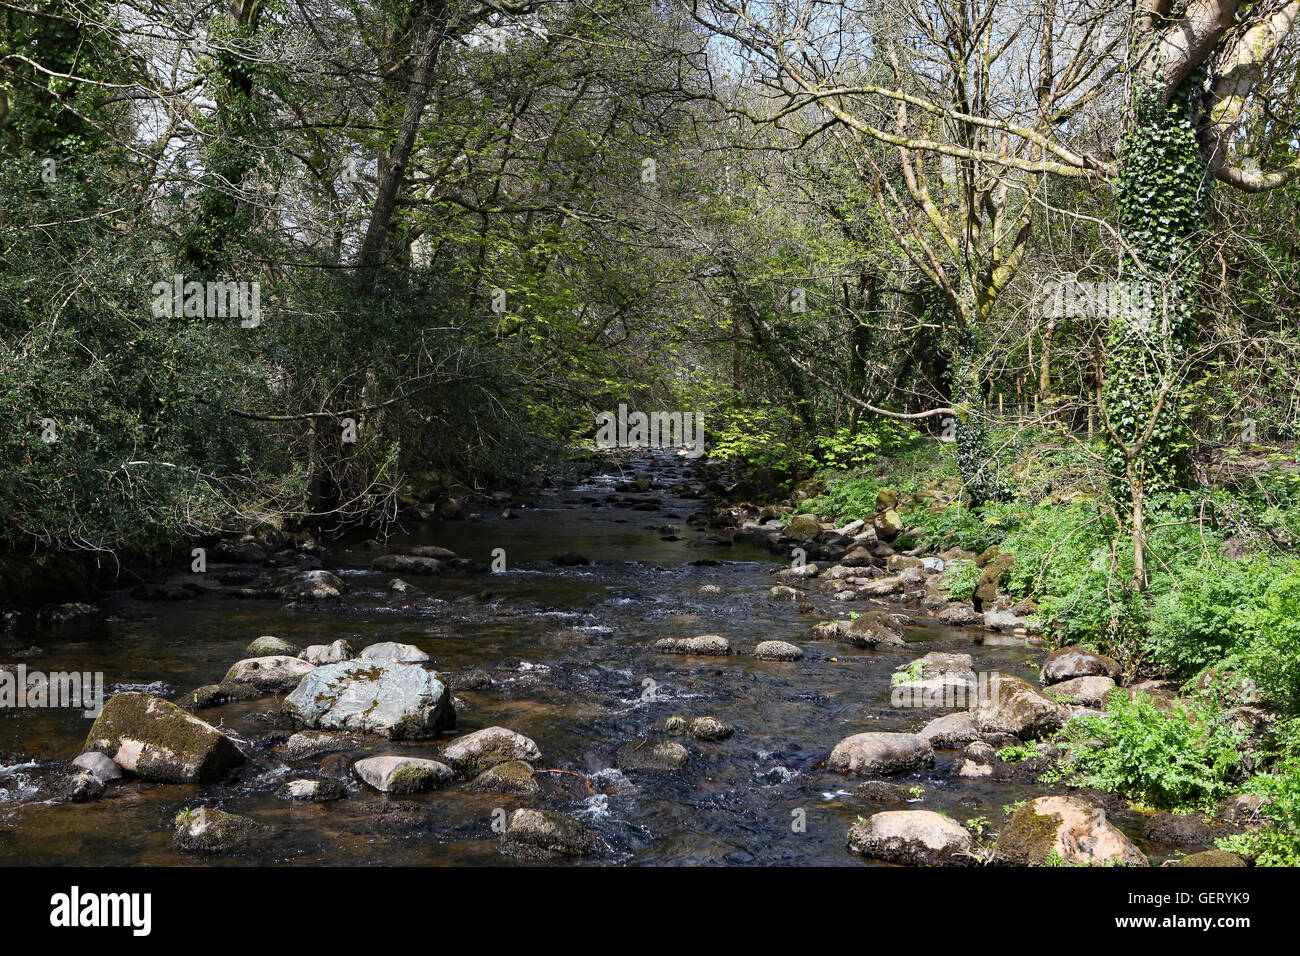 River Avon - Stock Image